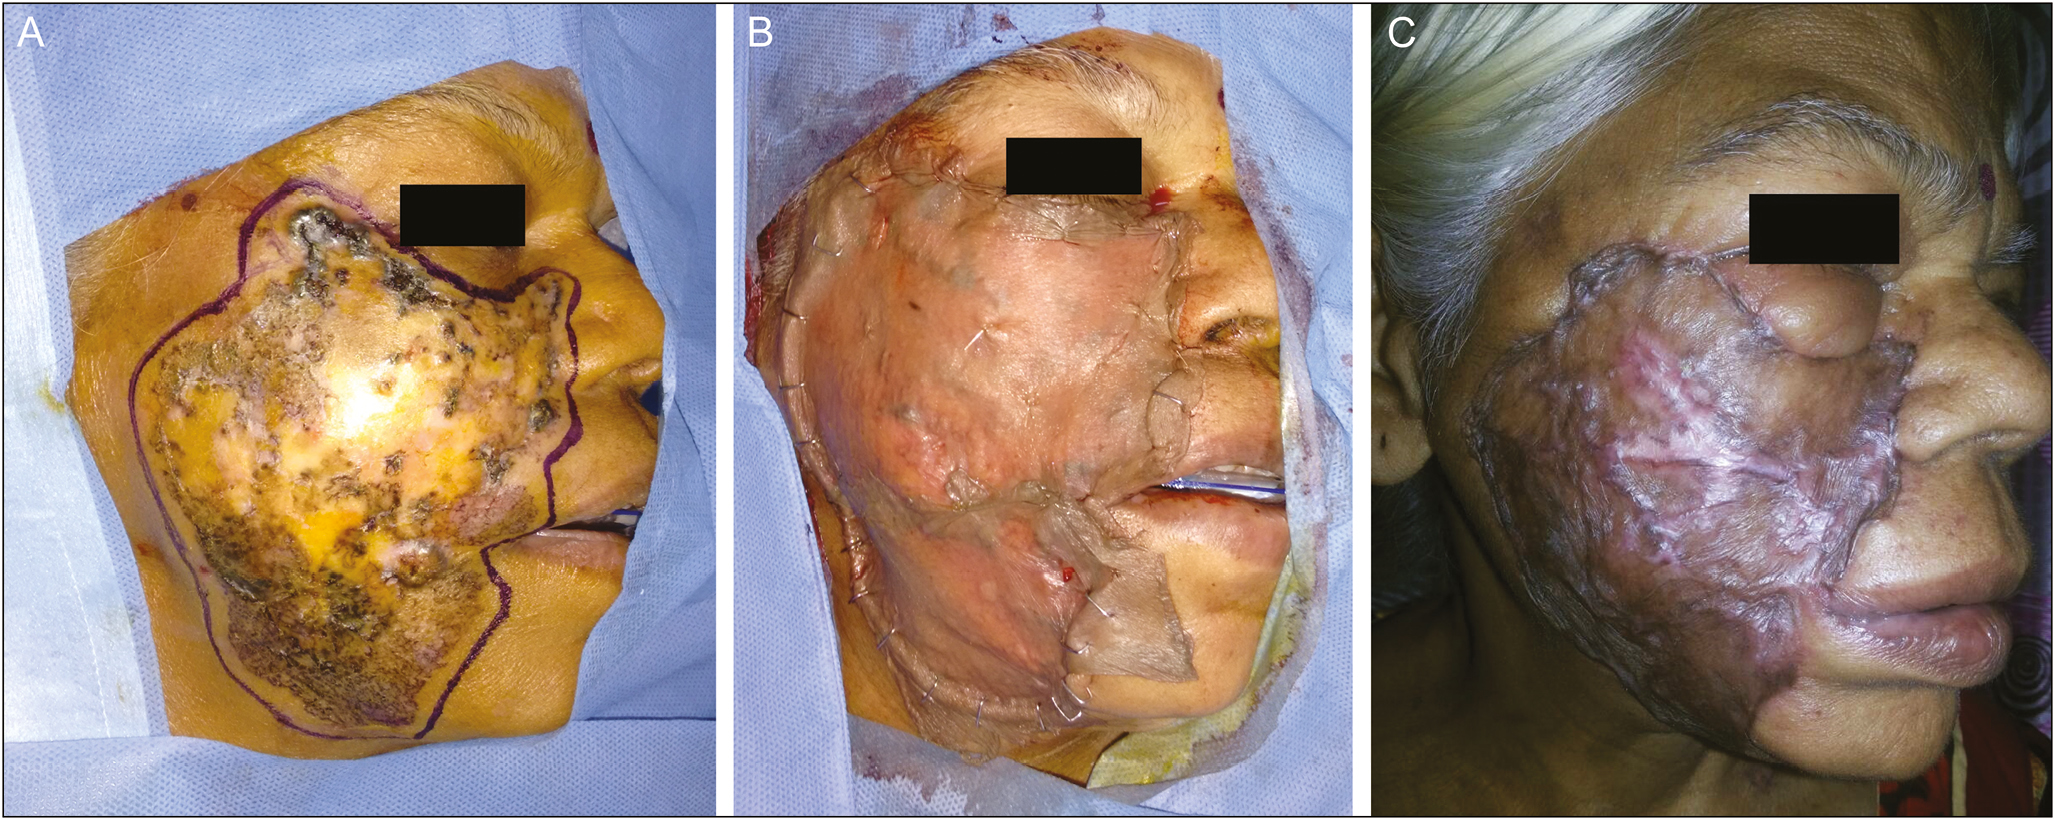 Figure 13: (A) Giant BCC involving right cheek. (B) SSG applied over the cheek defect after excision of BCC. (C) Hypertrophic scarring of the SSG